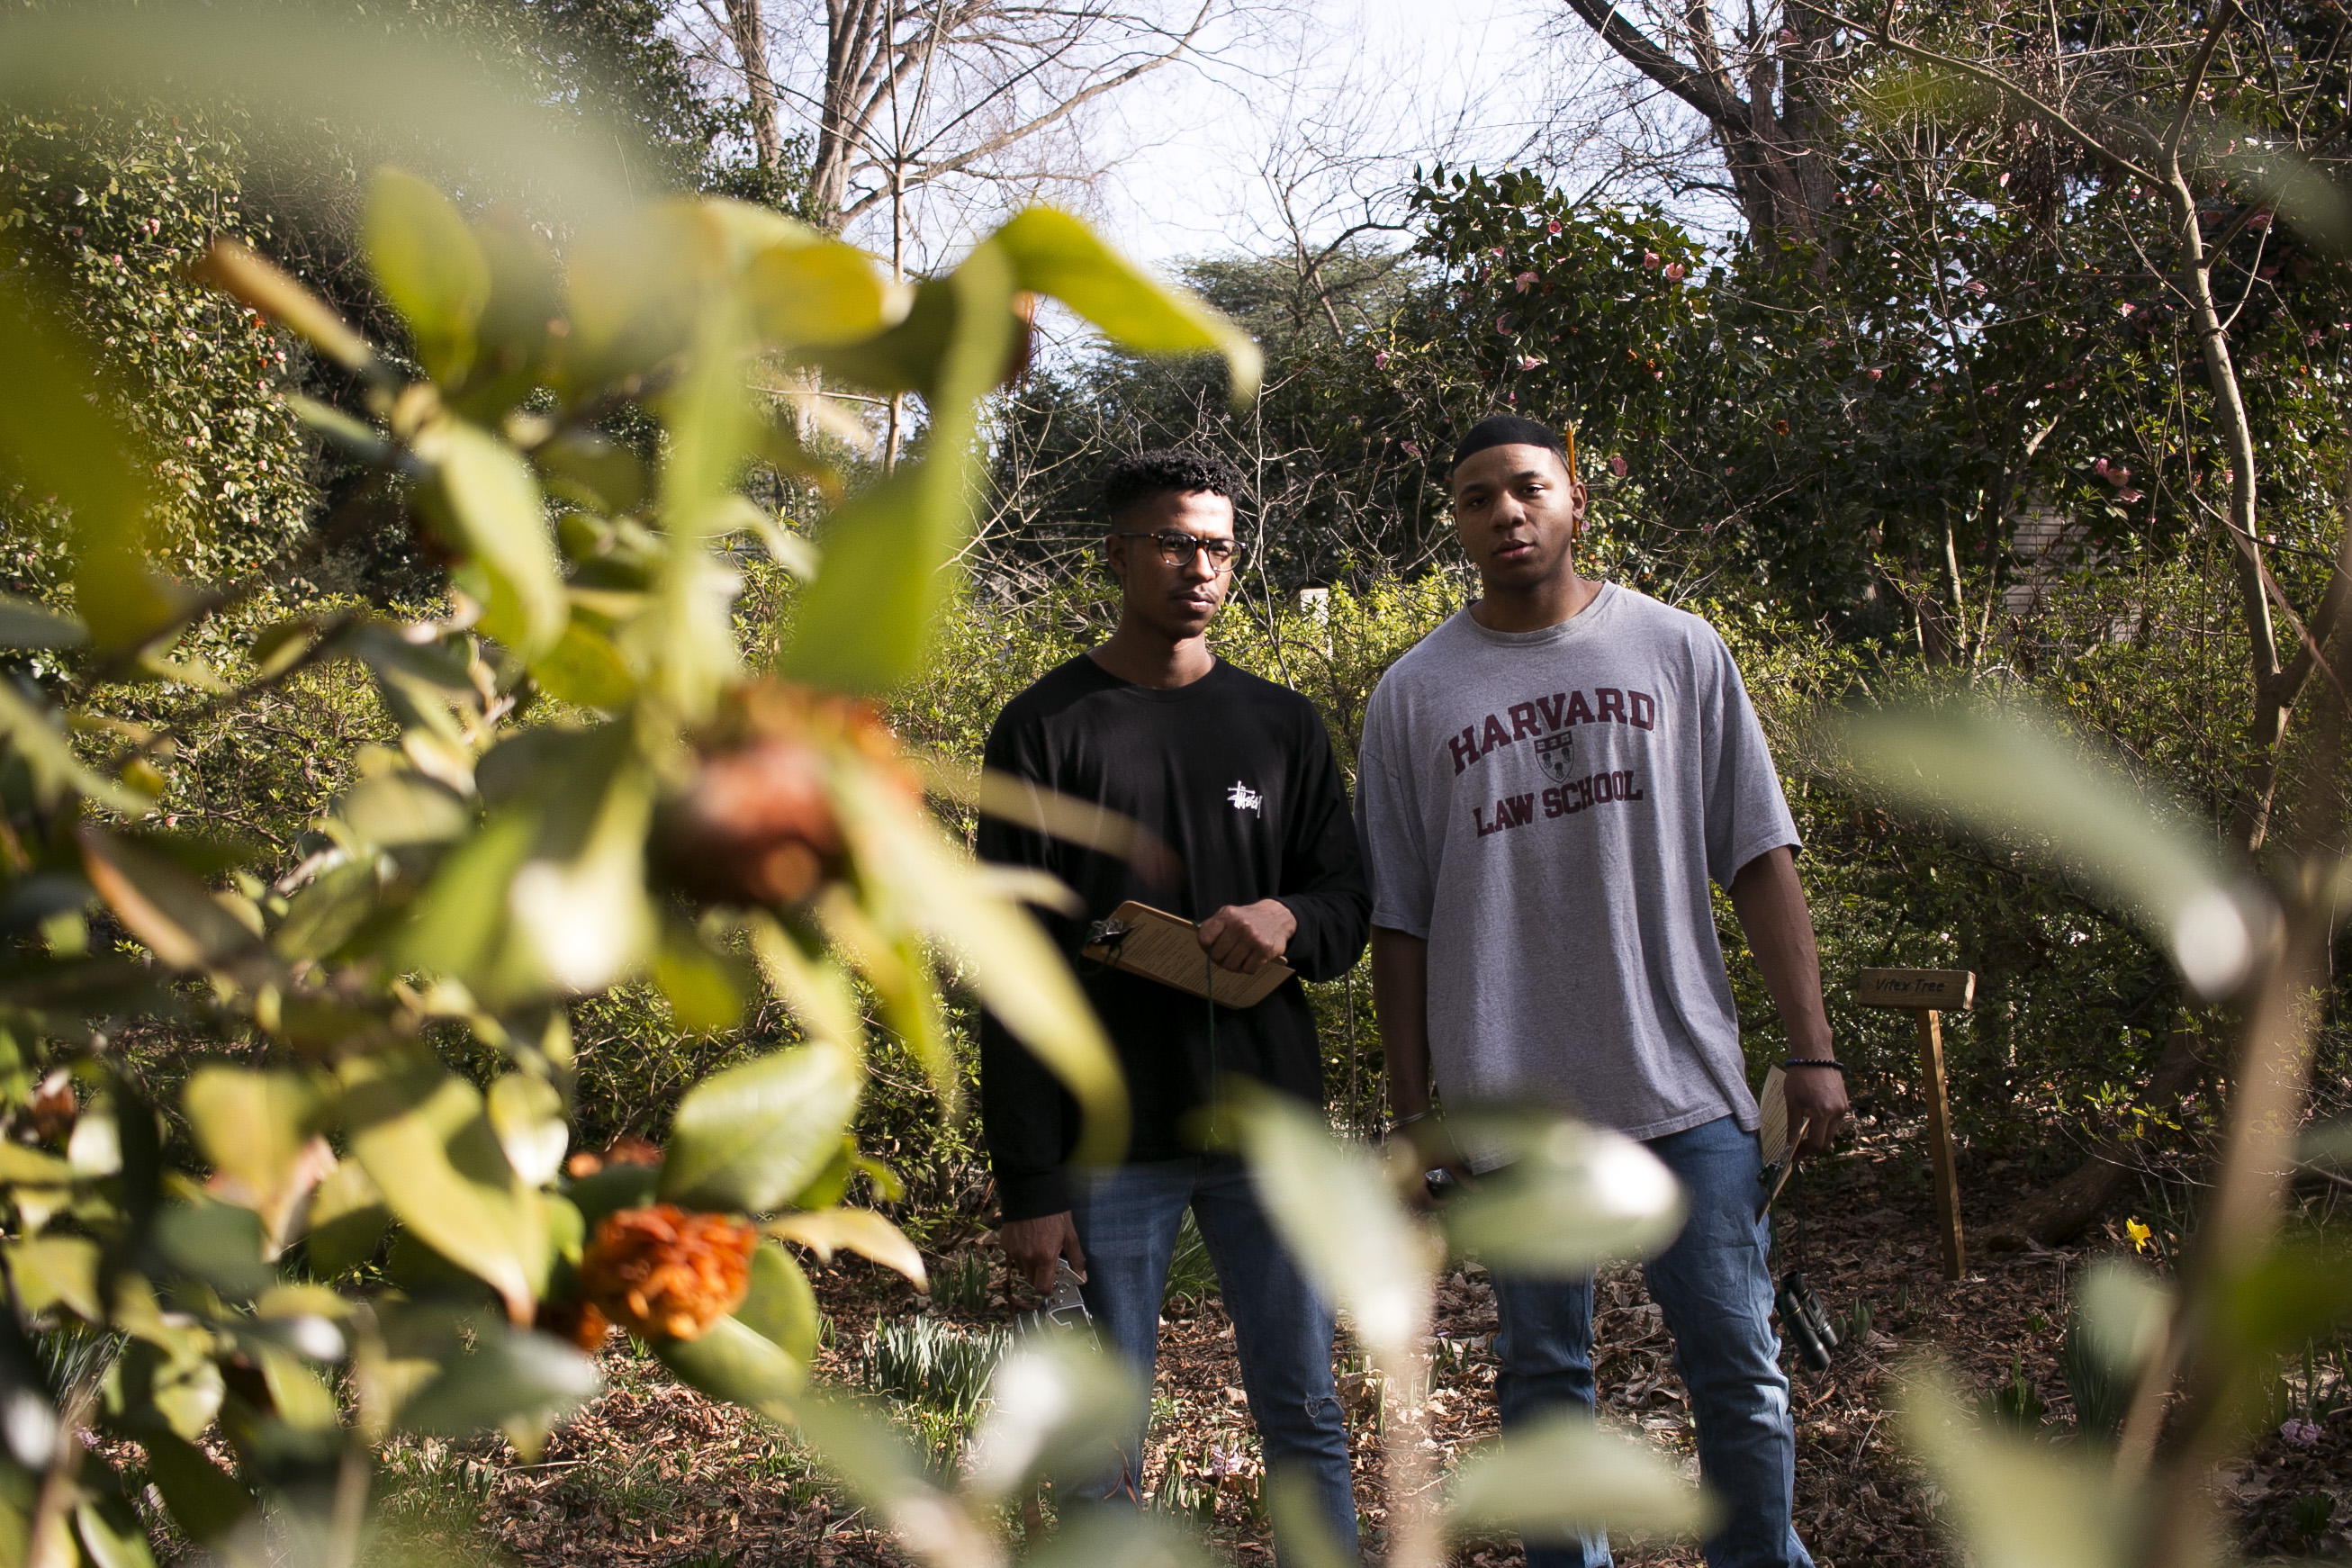 Sharod and Justin in the garden